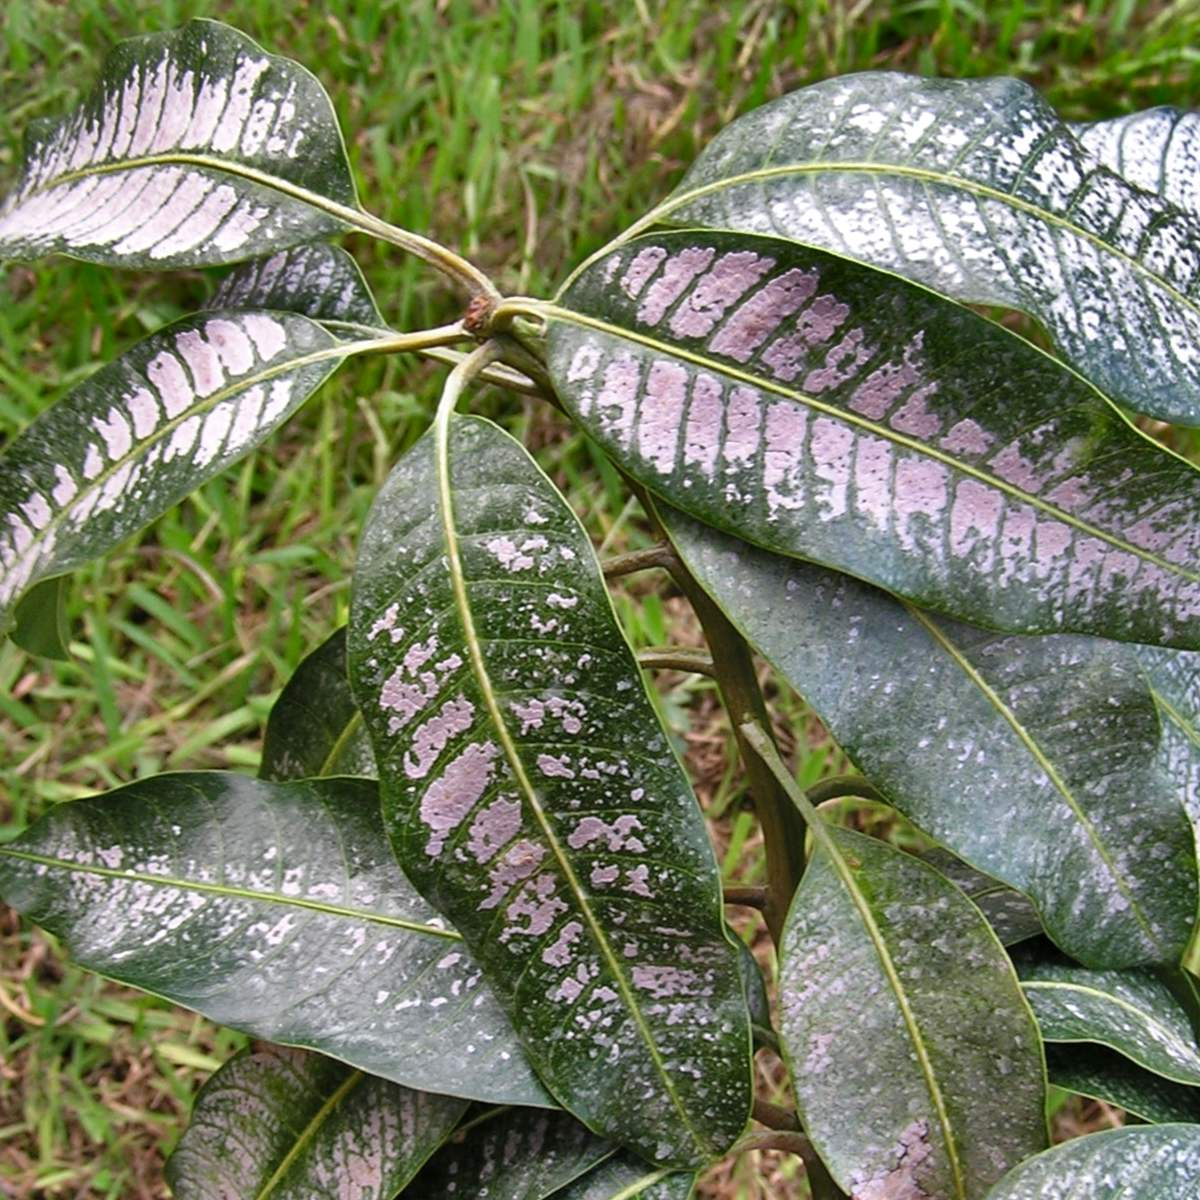 Mango leaves infected with thrips